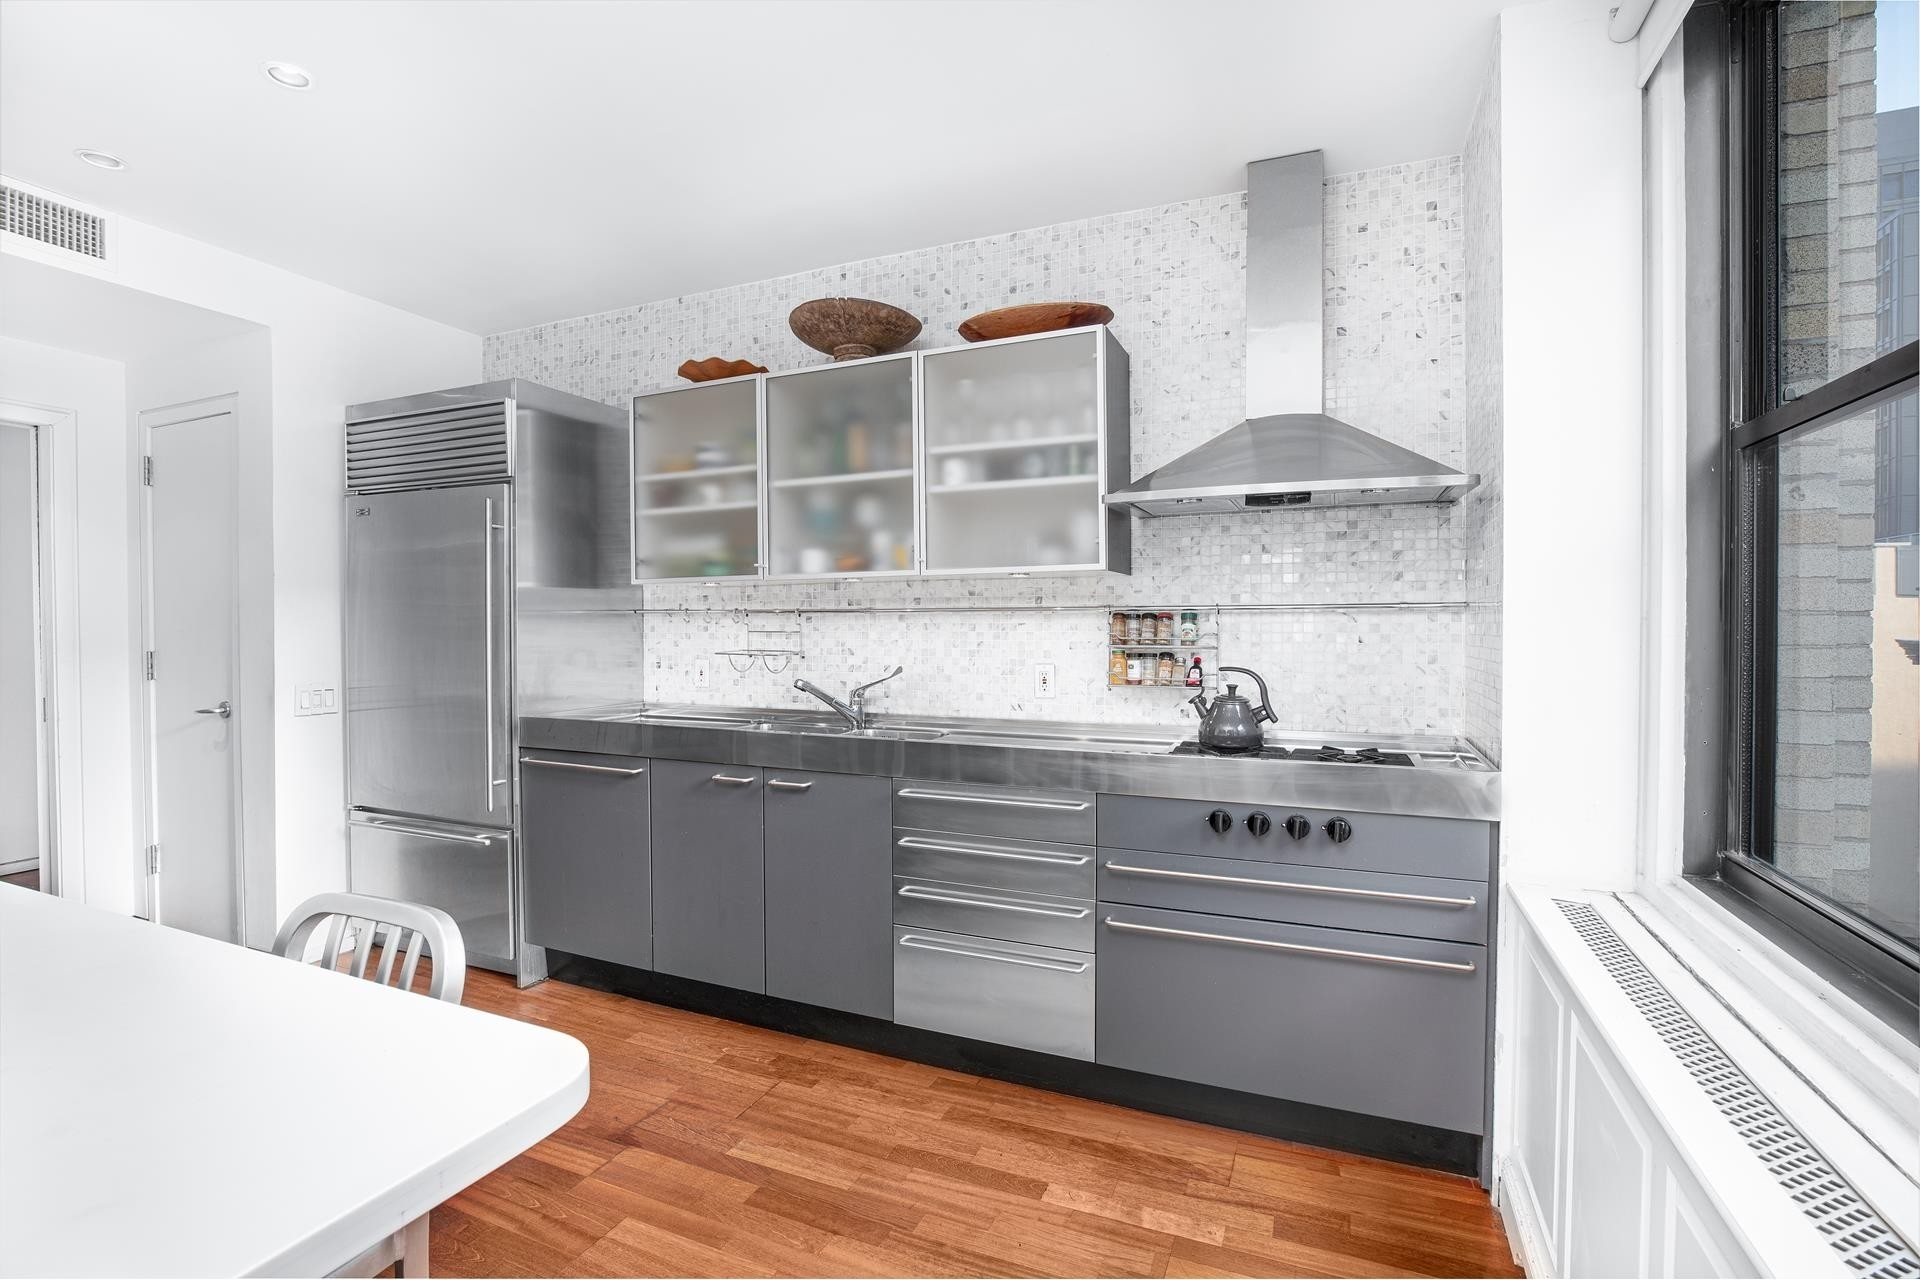 2. Condominiums for Sale at FRANKLIN TOWER, 90 Franklin St, 7S TriBeCa, New York, NY 10013